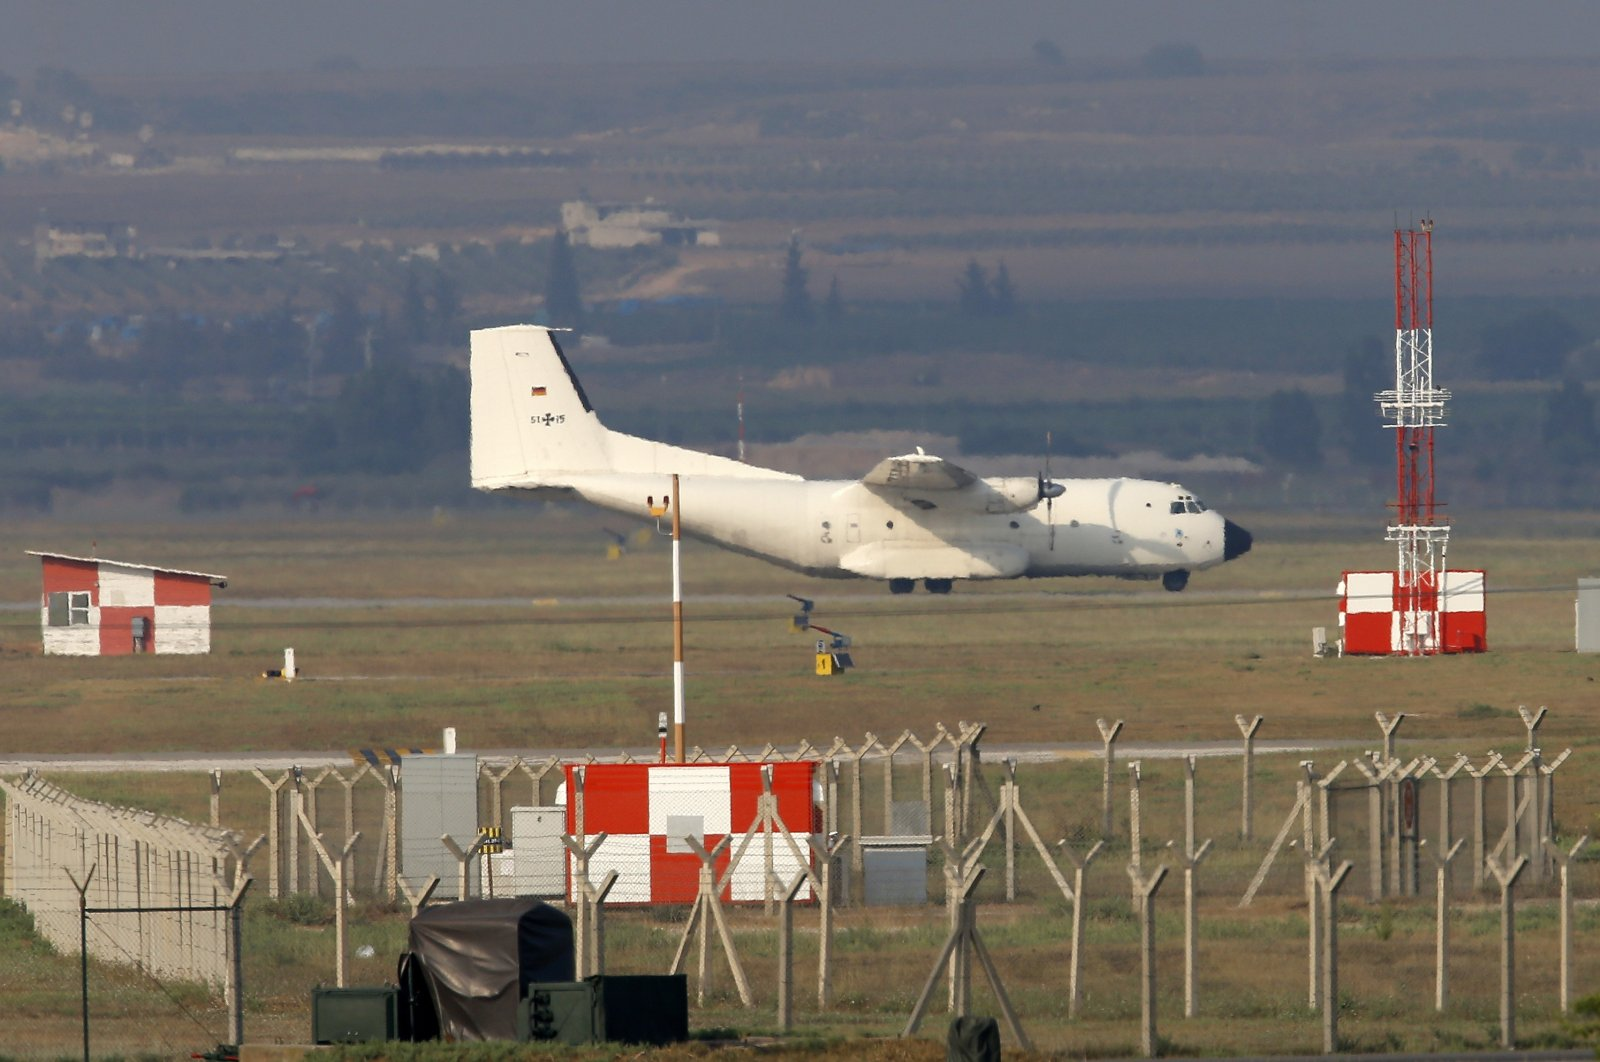 A German Air Force cargo plane maneuvers on the runway after it landed at Incirlik Air Base, on the outskirts of the city of Adana, southern Turkey, July 29, 2015. (AP File Photo)